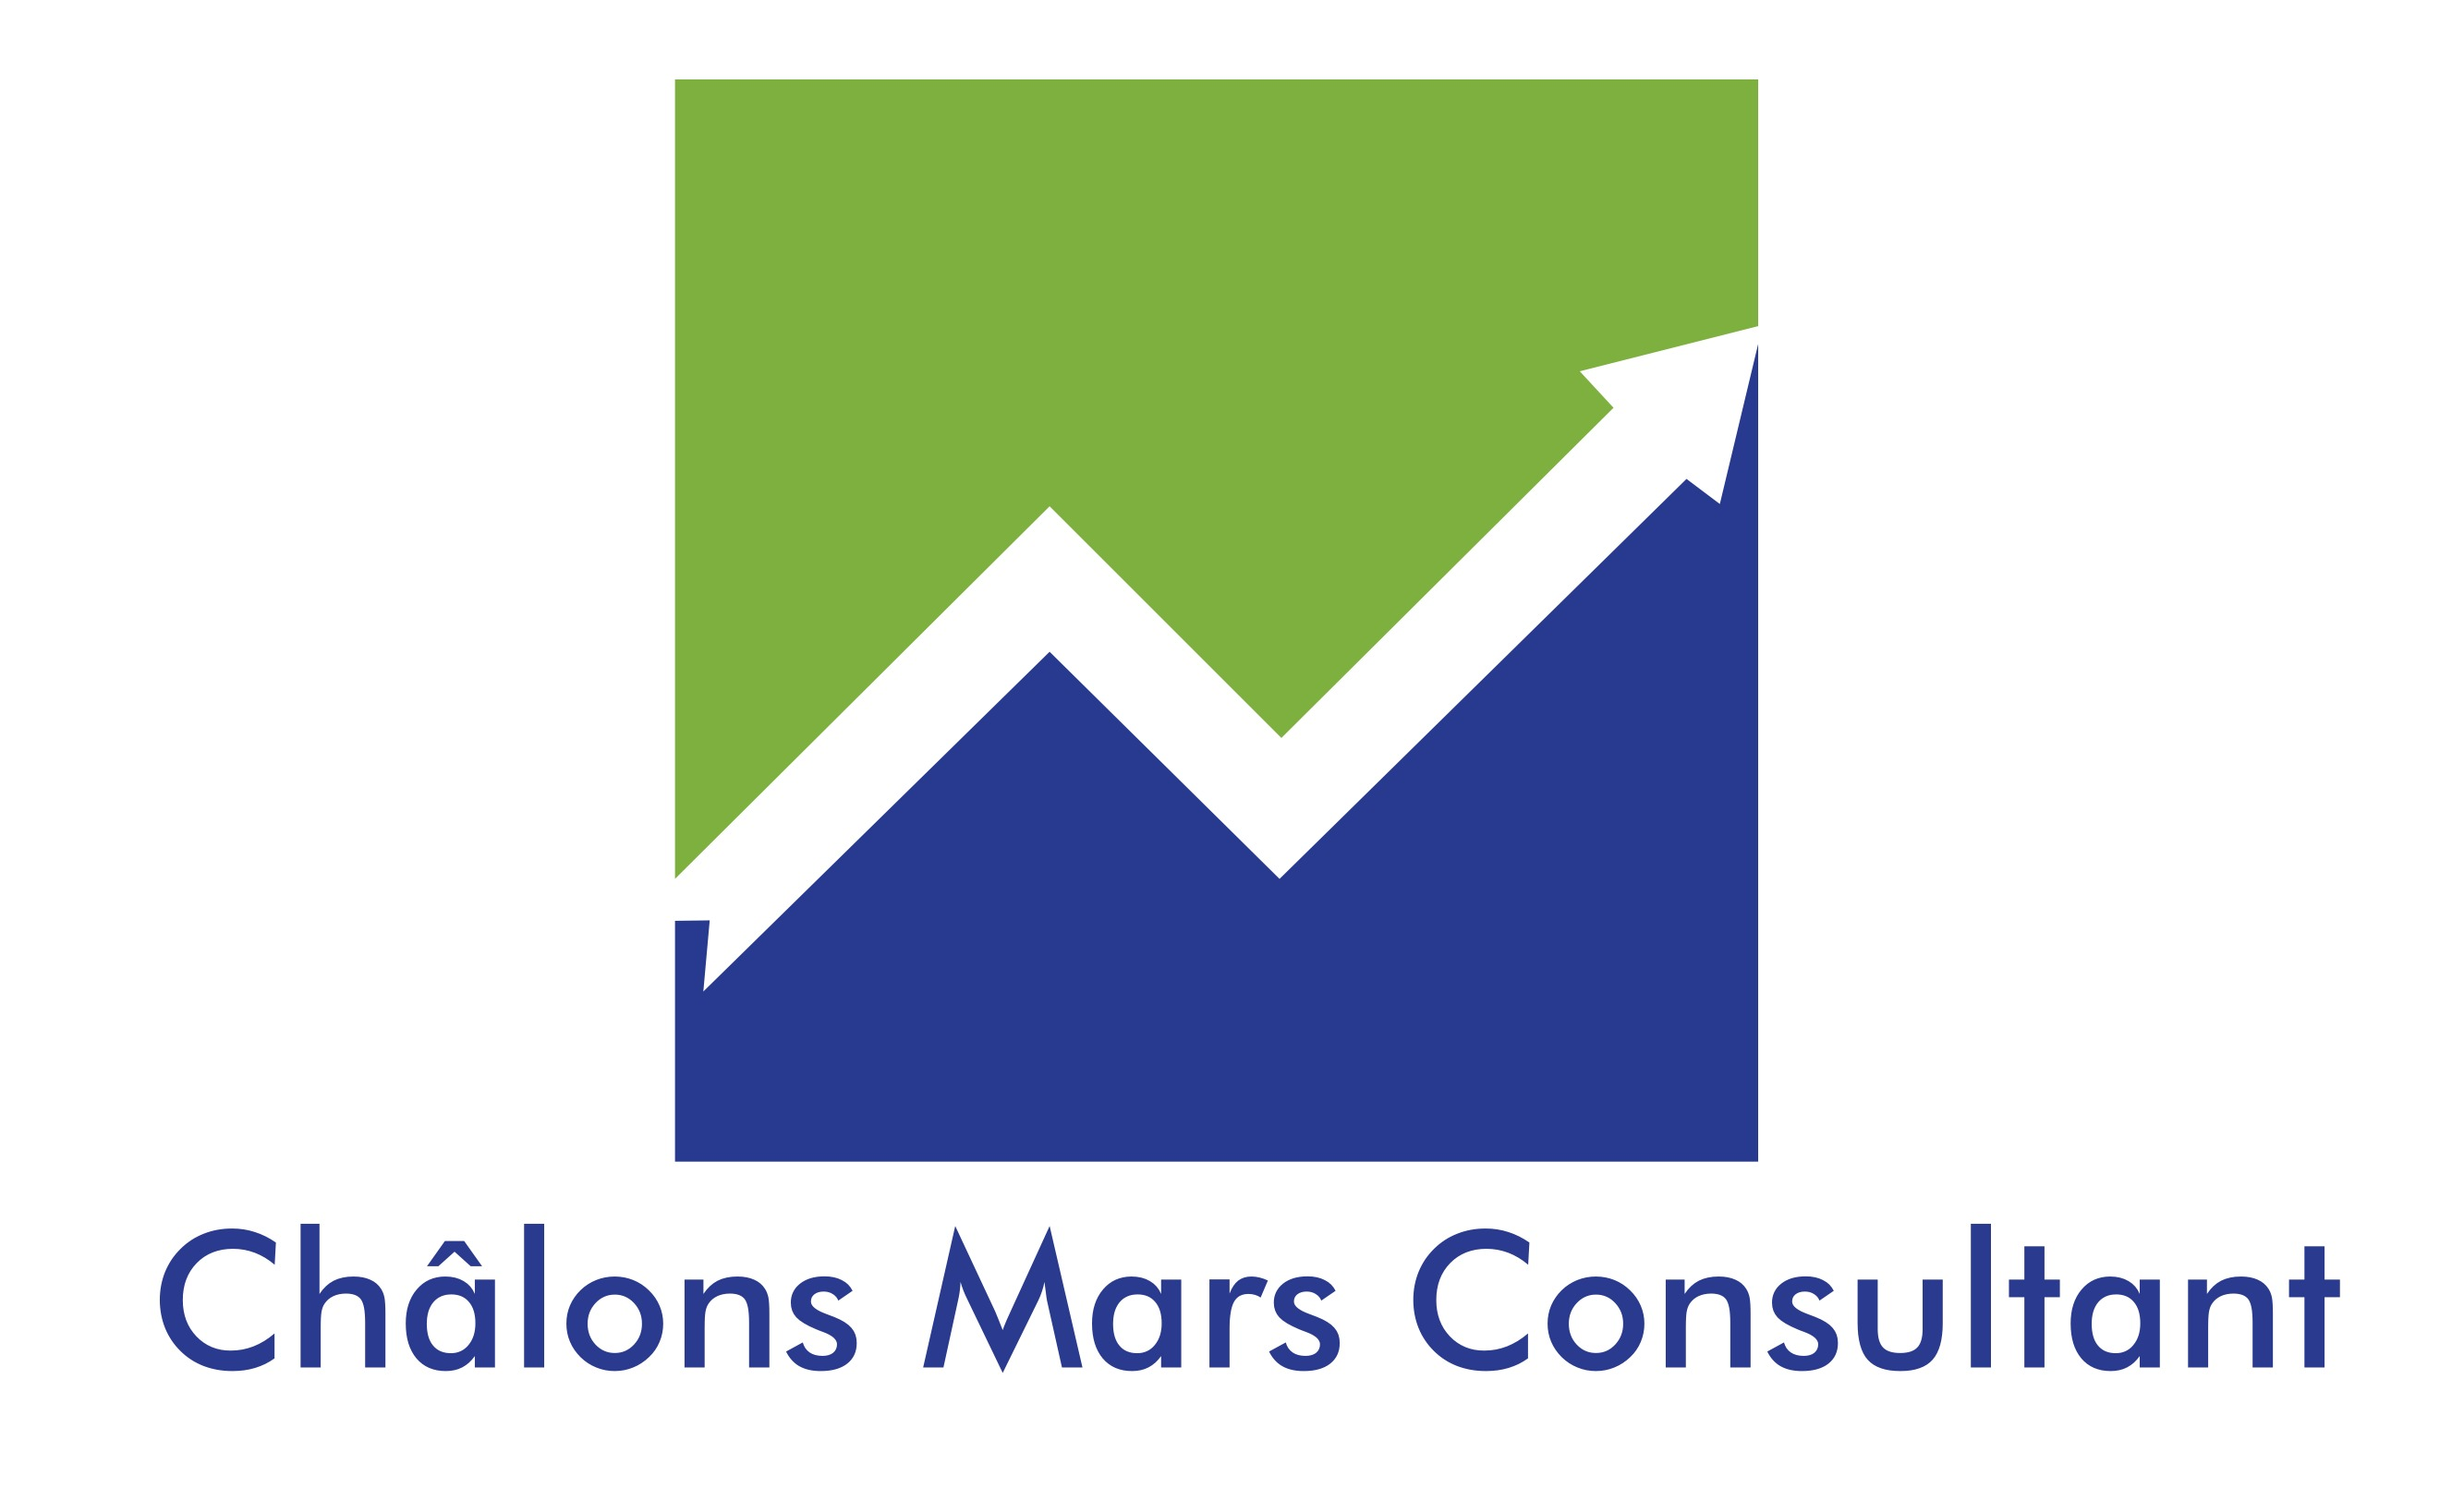 CHALONS MARS CONSULTANT